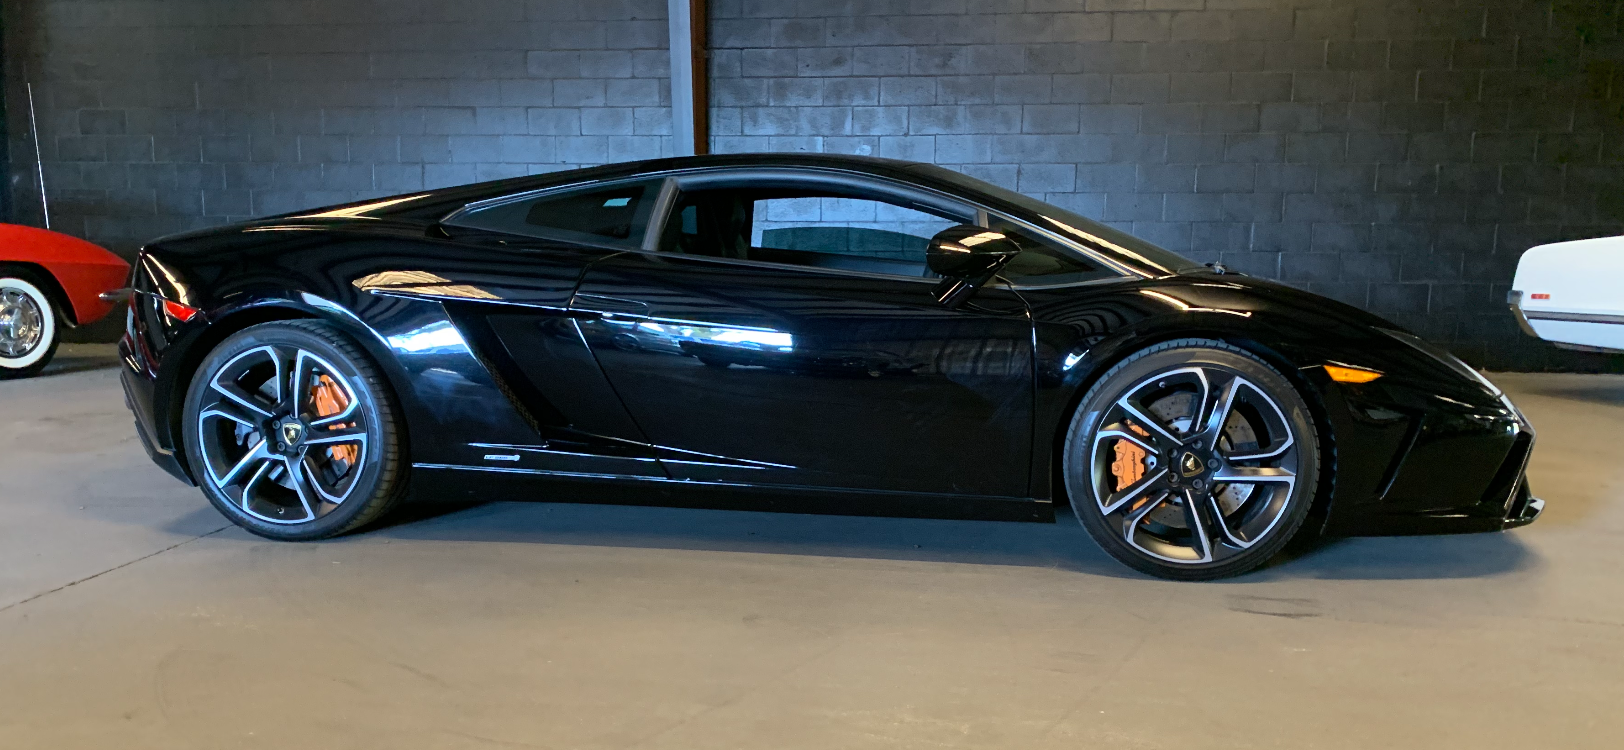 2013 lamborghini gallardo lp560 4 coupe